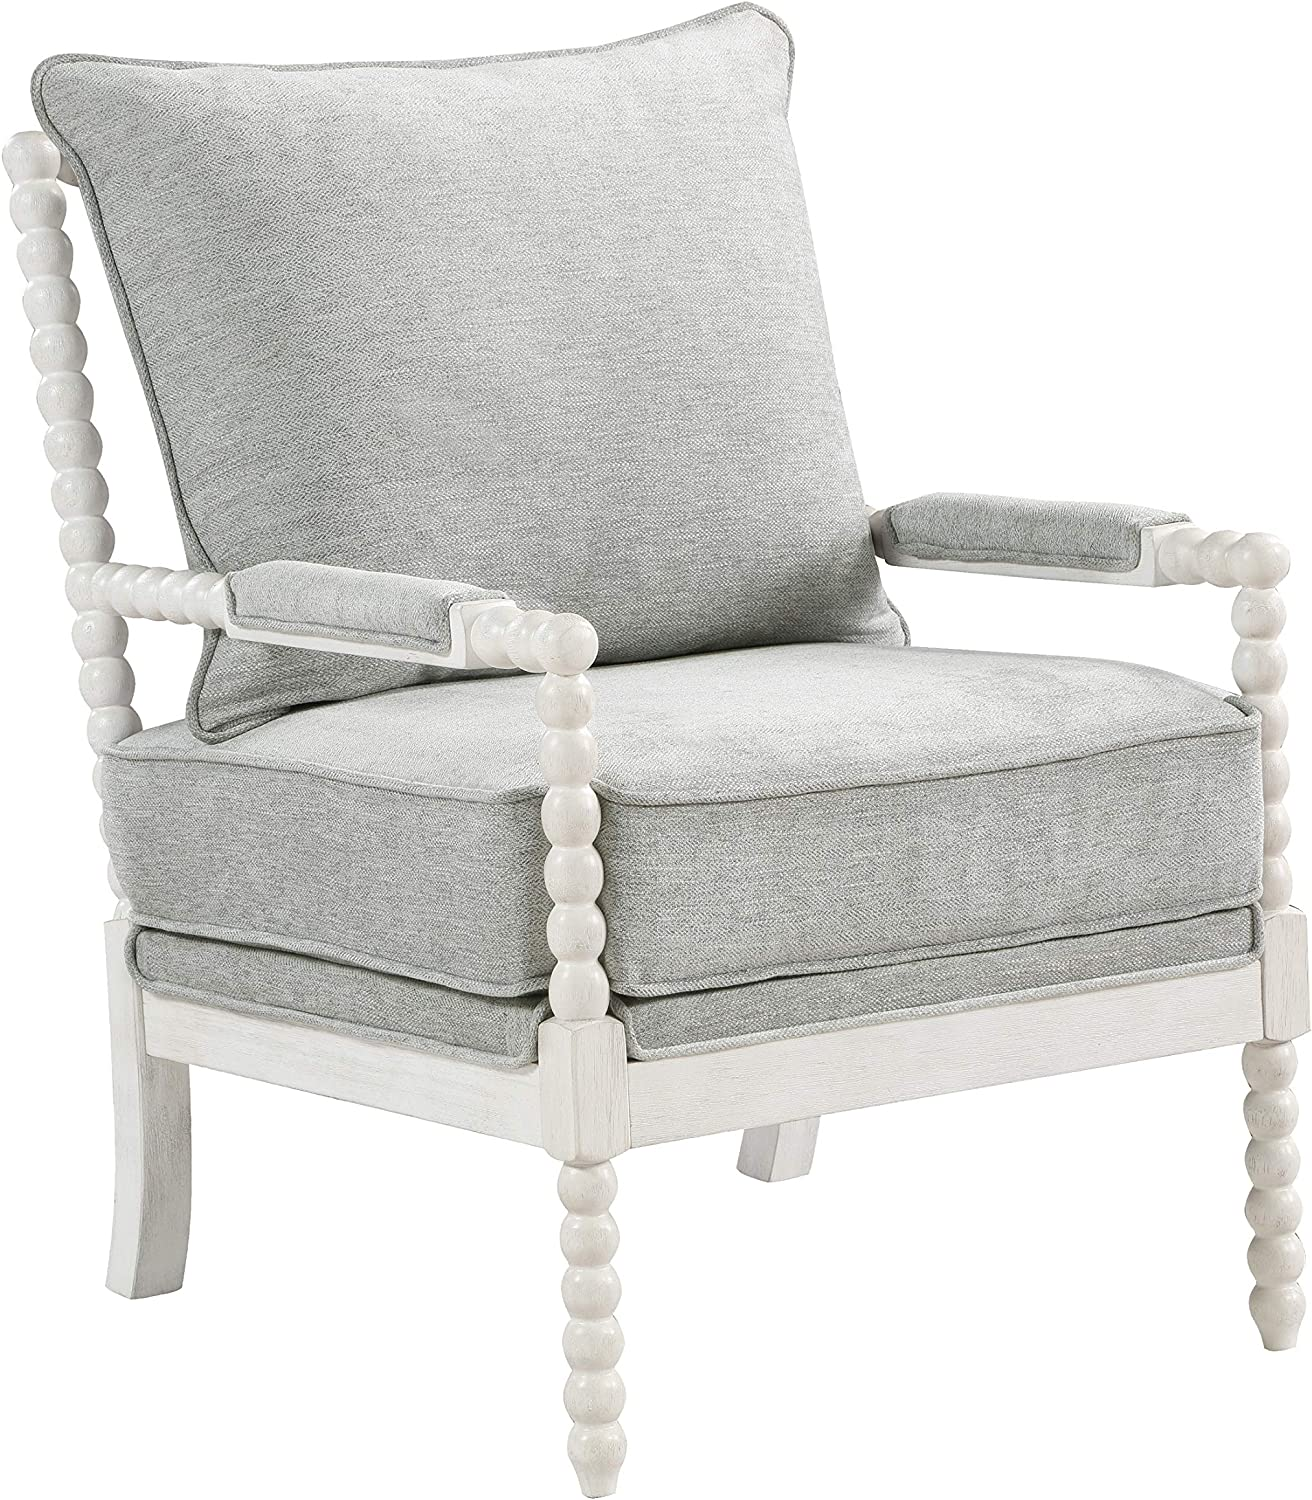 OSP Home Furnishings Kaylee Tucson Mall Spindle Frame Accent White Chair wi Max 51% OFF